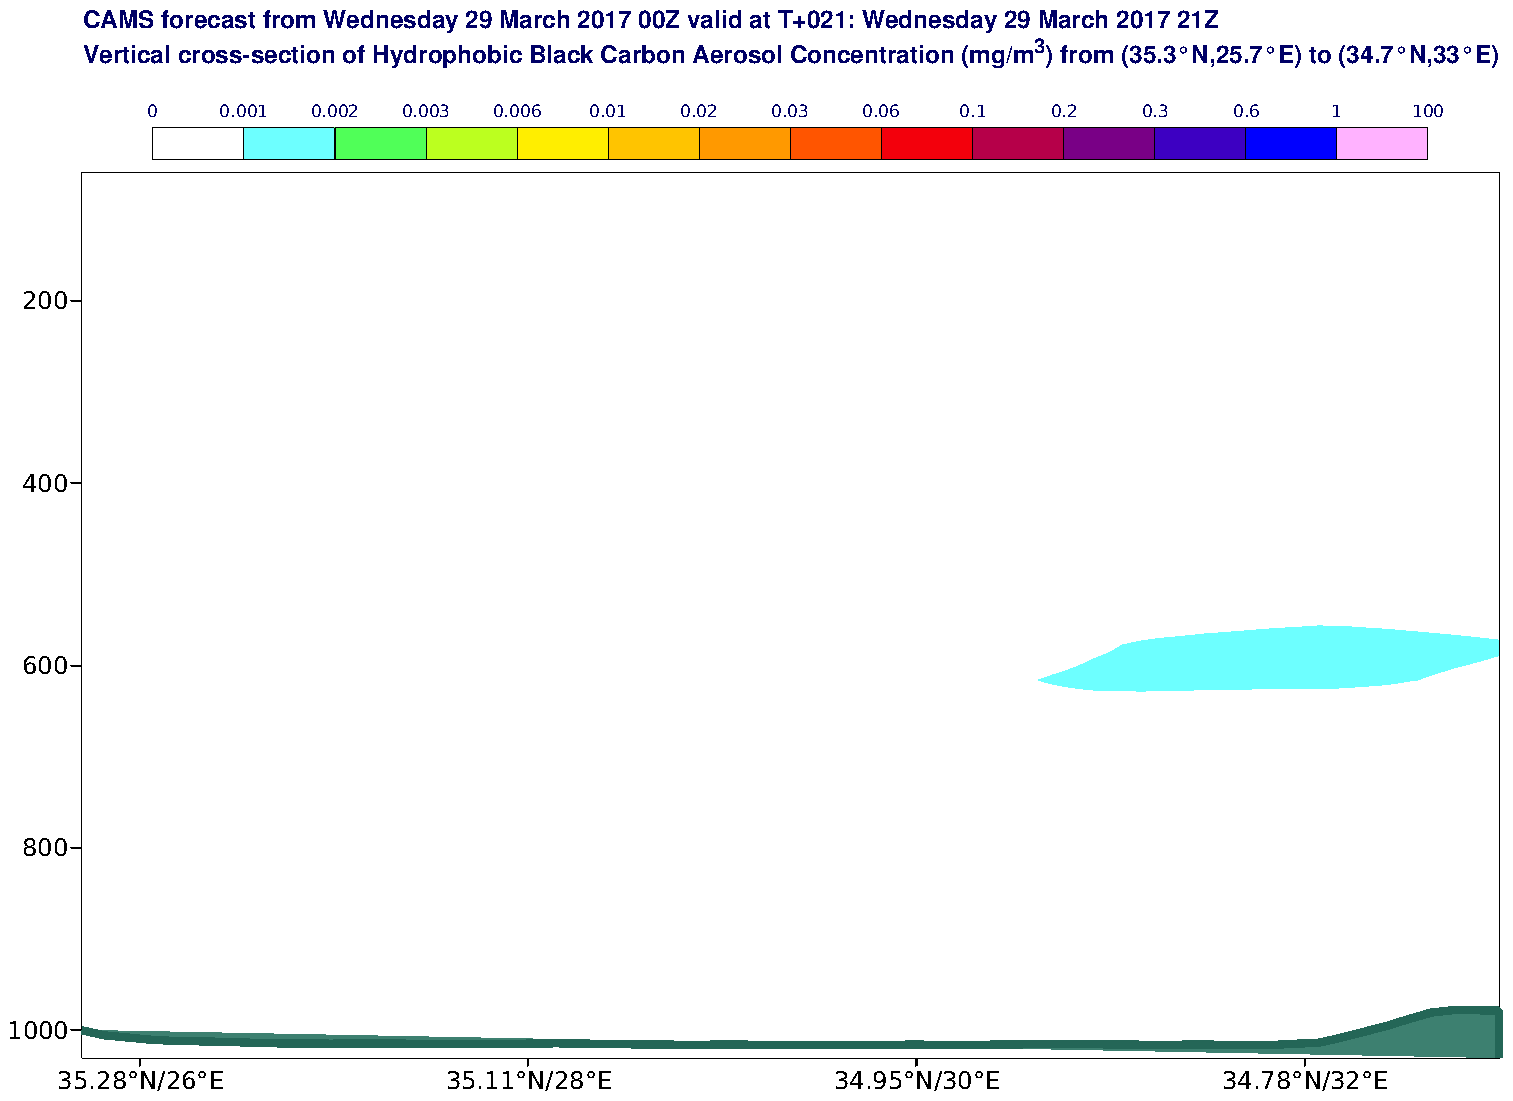 Vertical cross-section of Hydrophobic Black Carbon Aerosol Concentration (mg/m3) valid at T21 - 2017-03-29 21:00